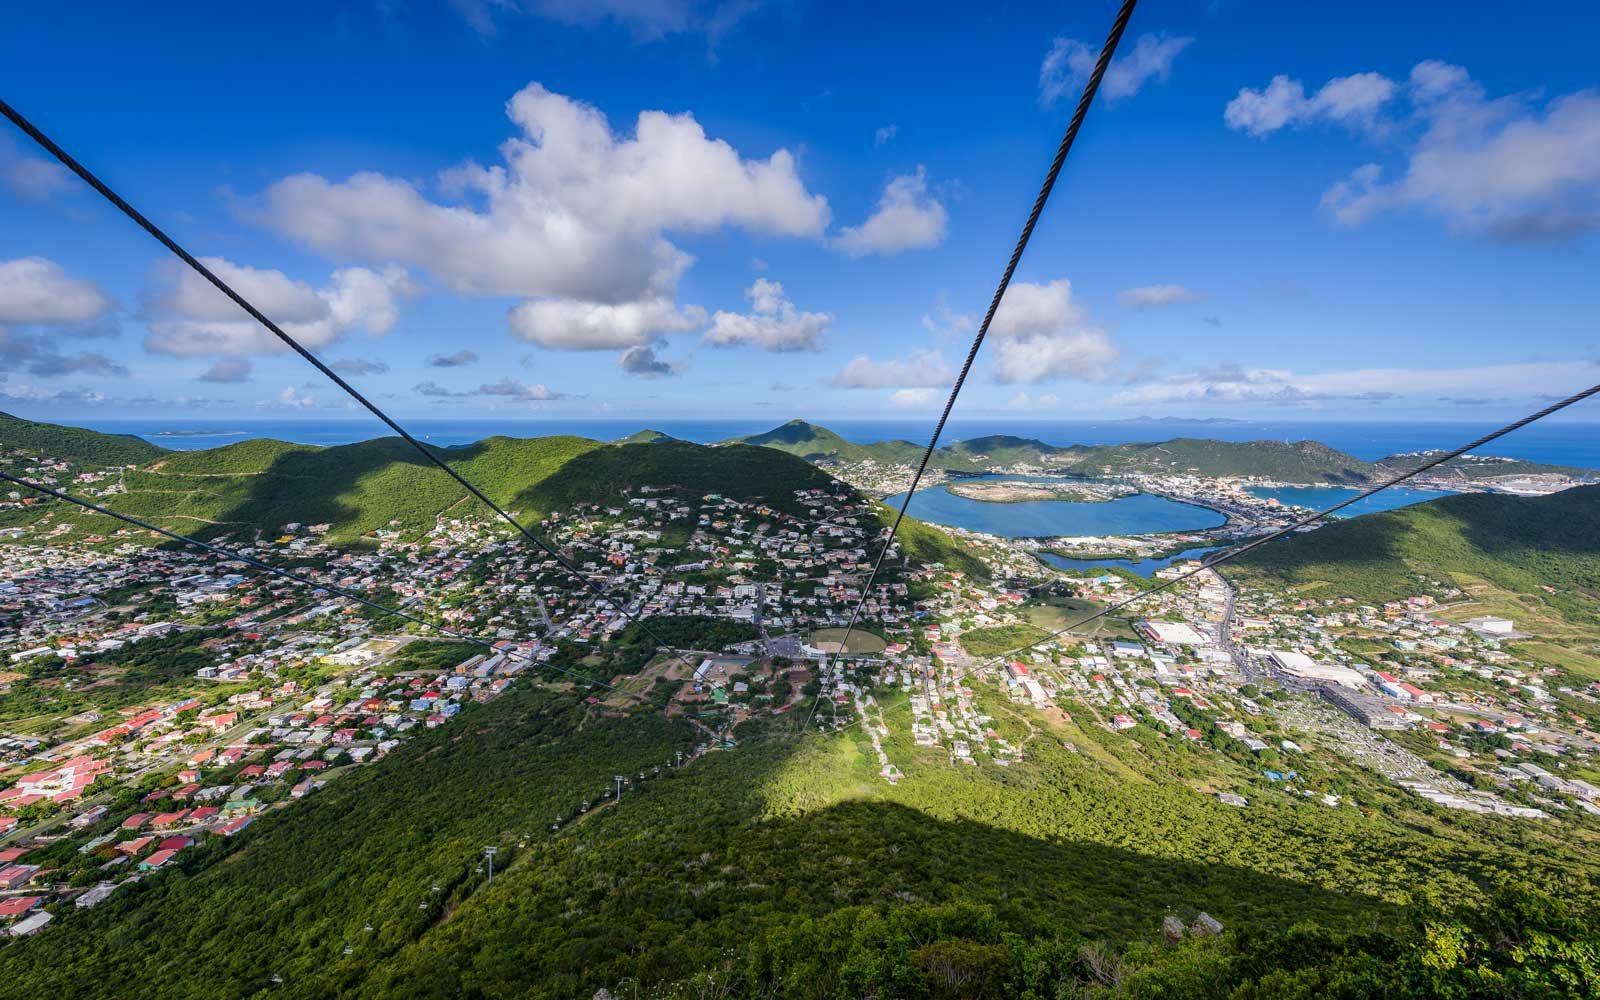 The World's Steepest Zip Line Is Coming to St. Martin